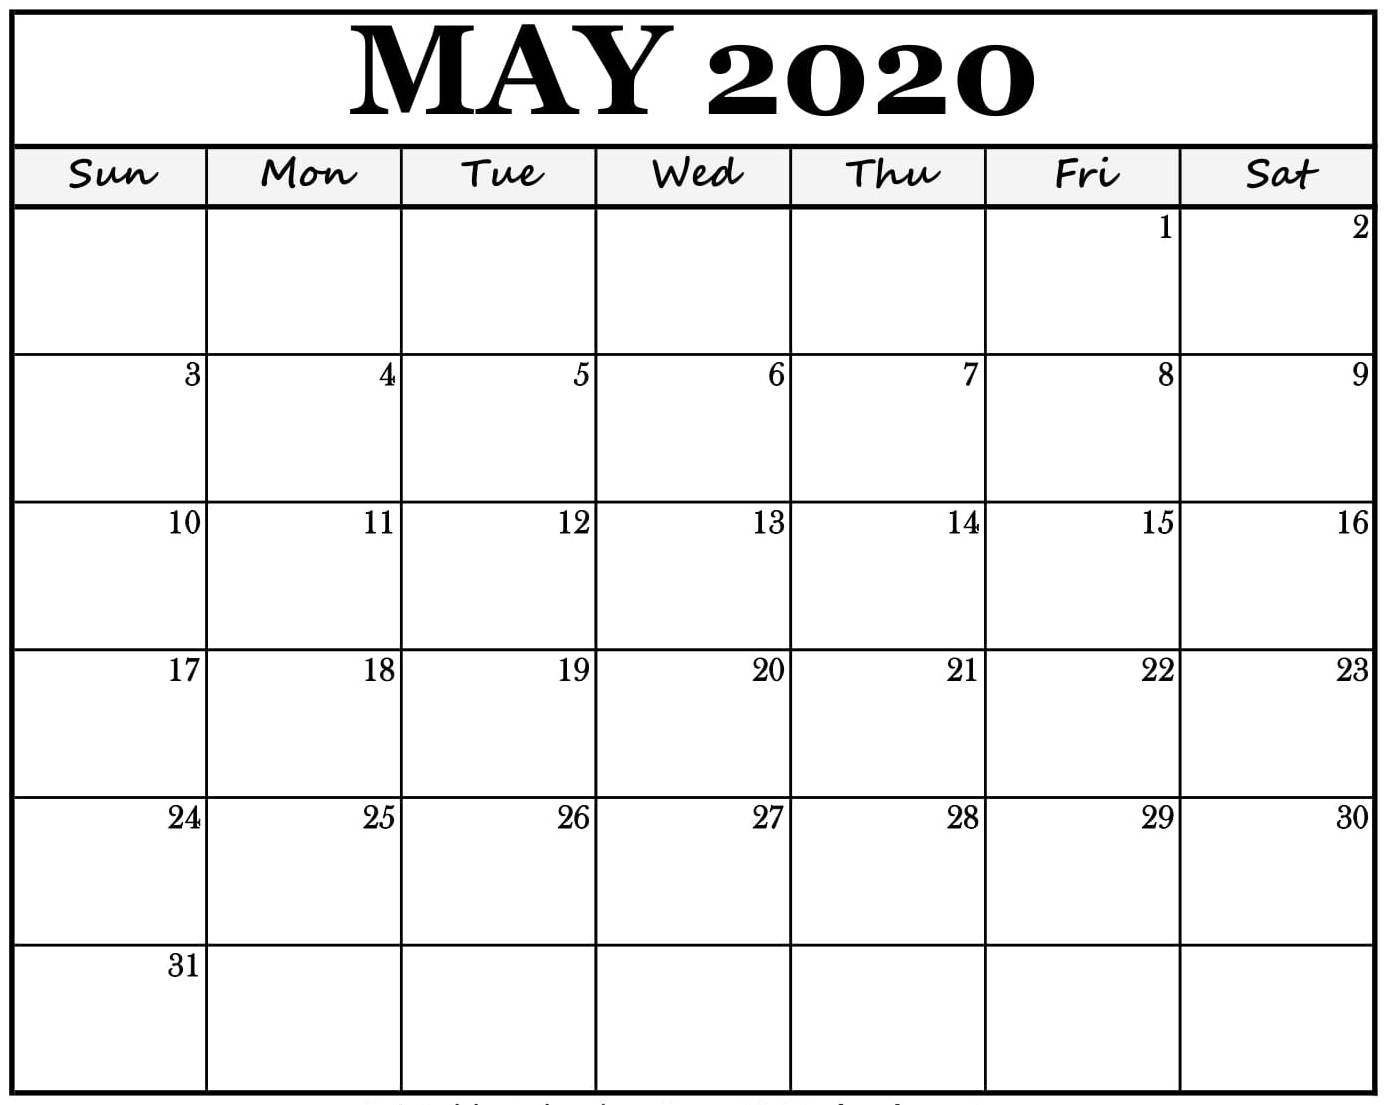 Monthly Calendar For May 2020 Fillable Printable